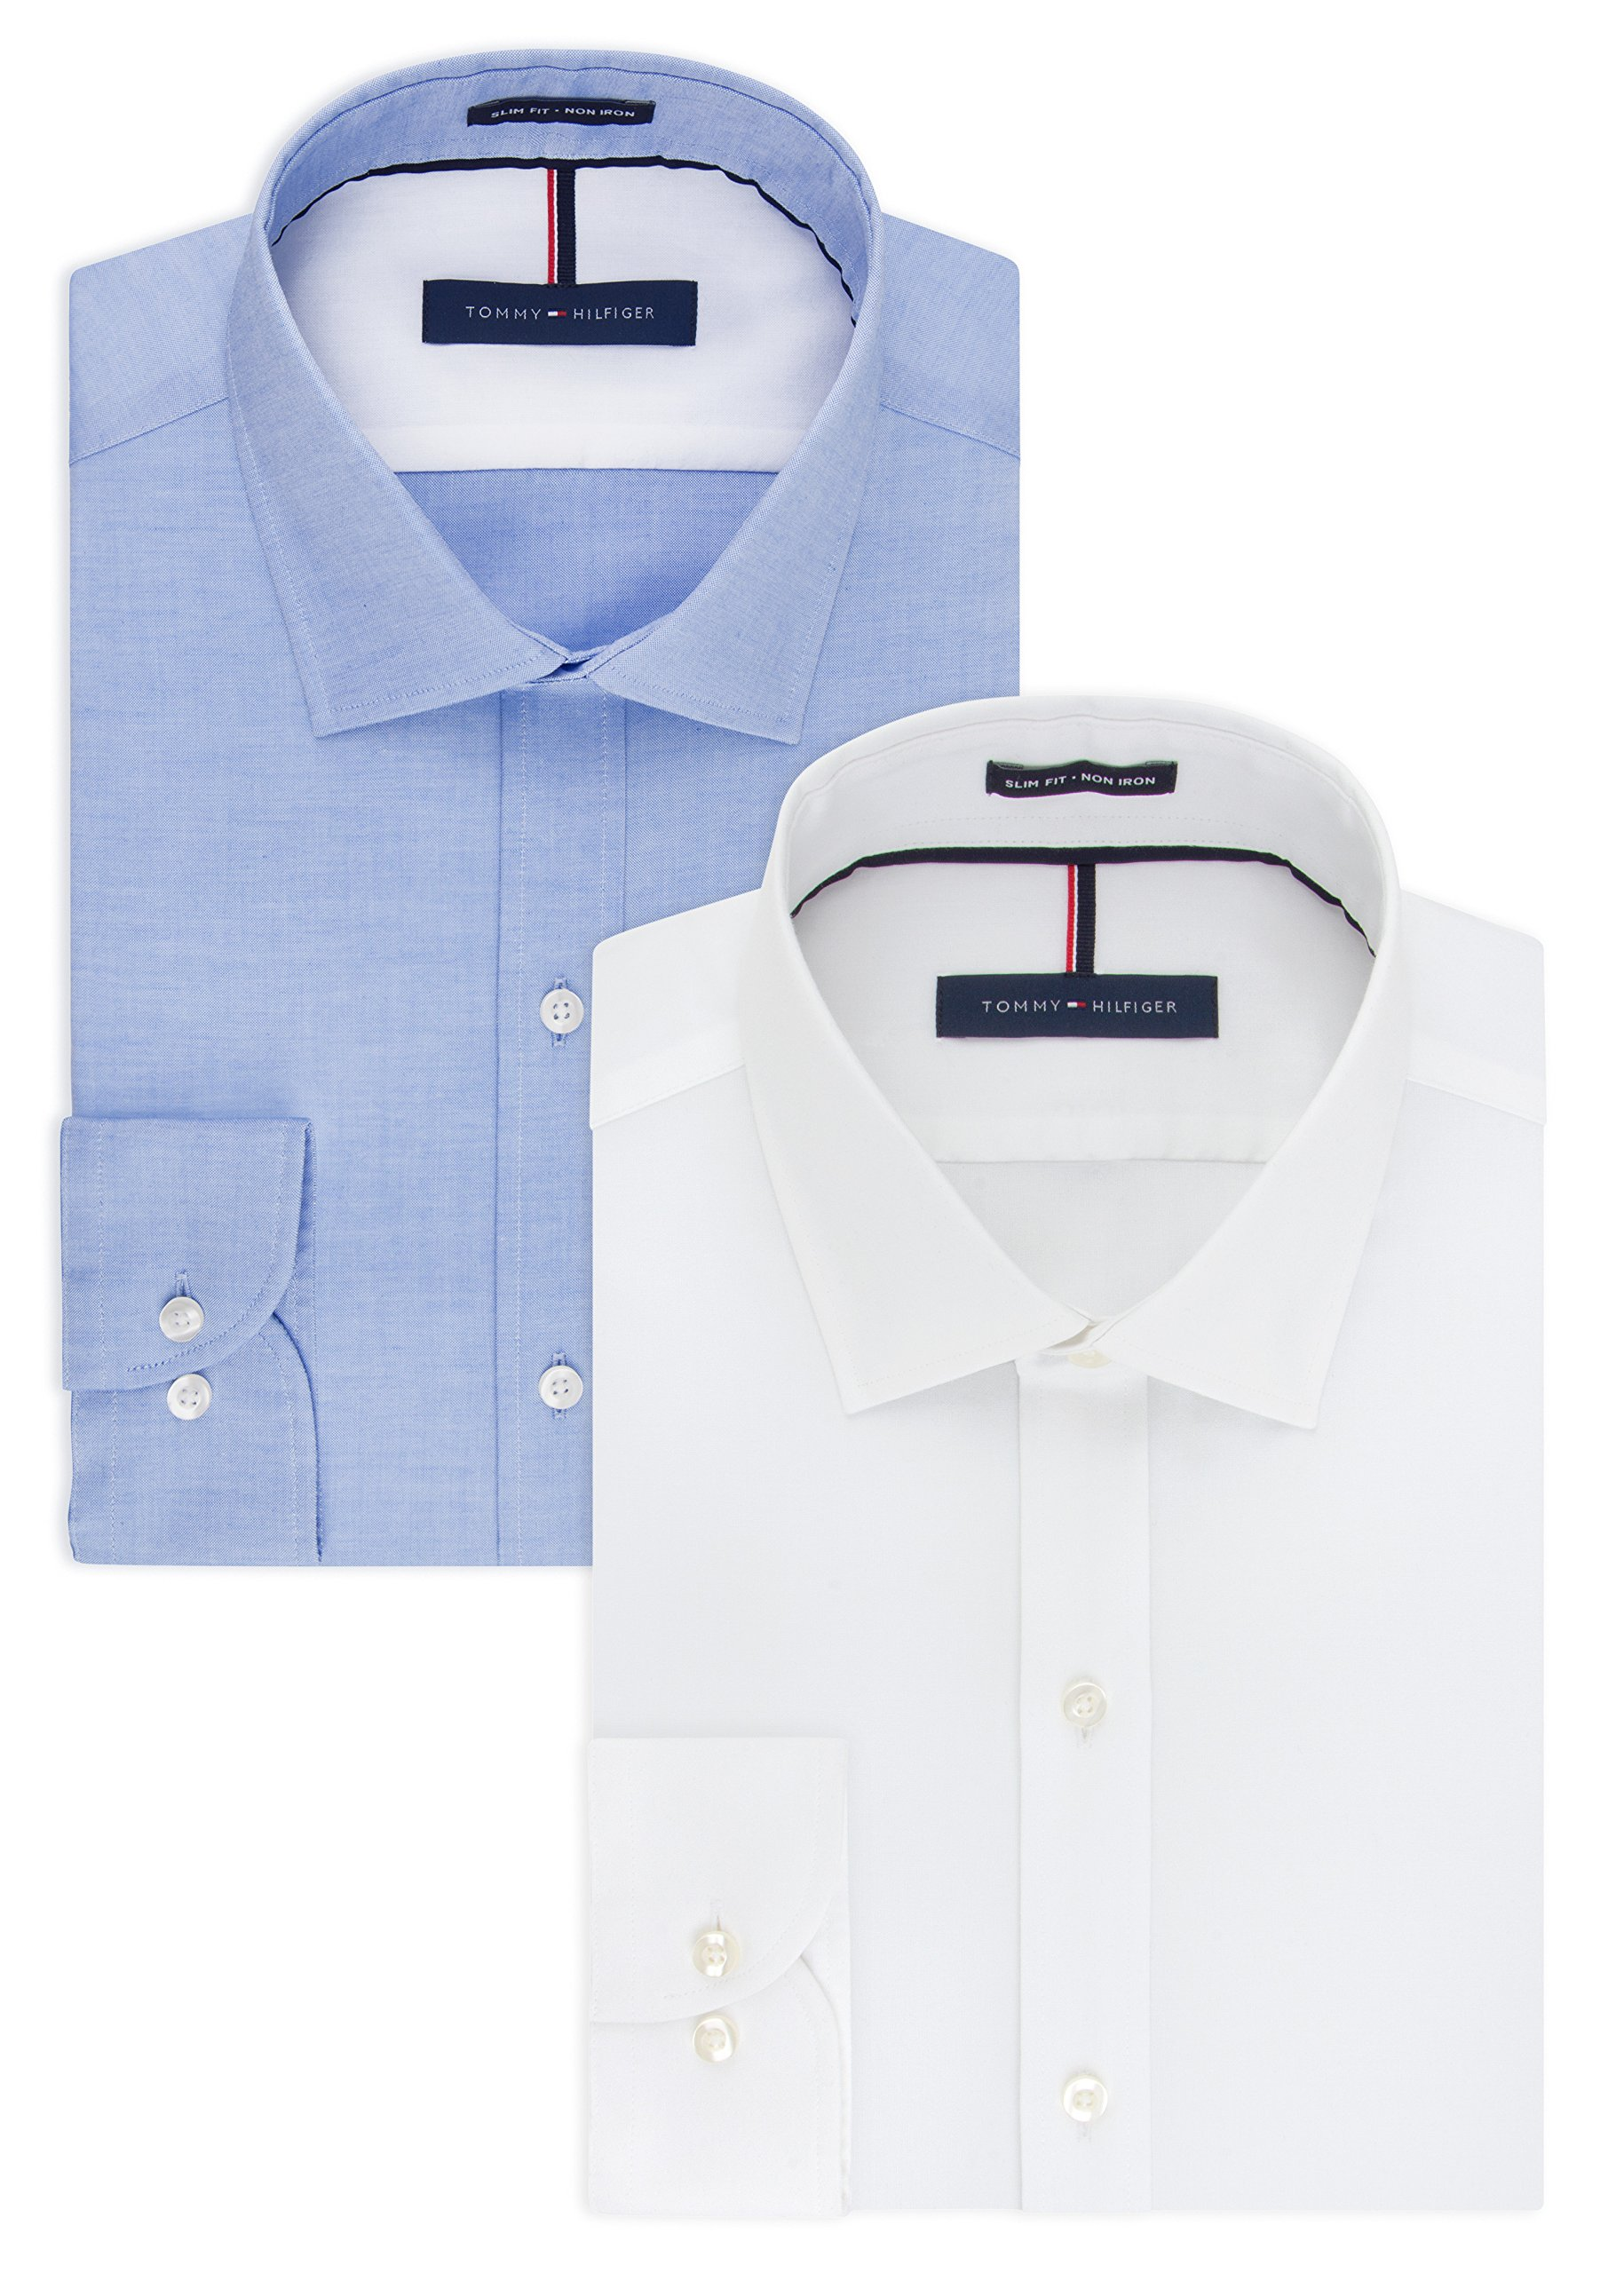 Tommy Hilfiger Men's Non Iron Slim Fit Solid Spread Collar Dress Shirt, White/Blue, 15.5'' Neck 32''-33'' Sleeve